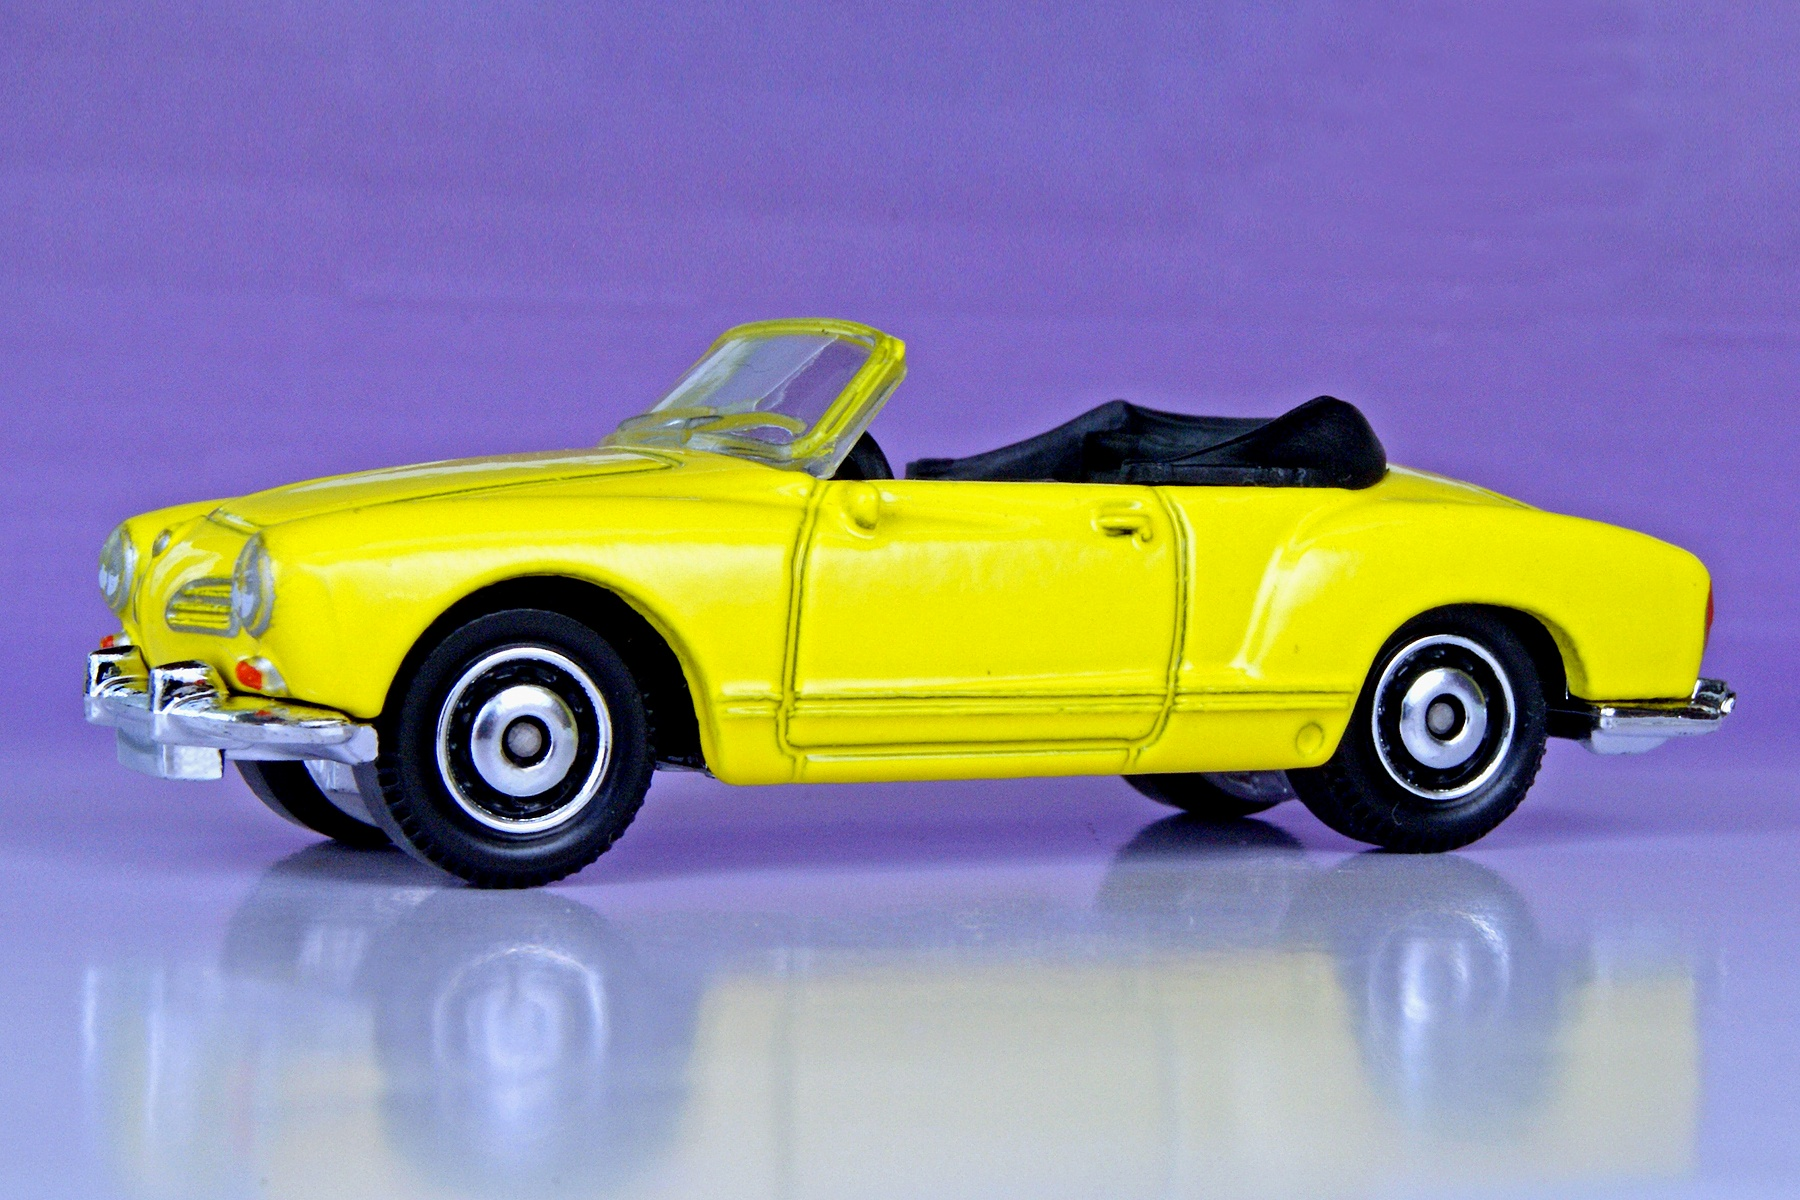 Type 14 Karmann Ghia Conv't